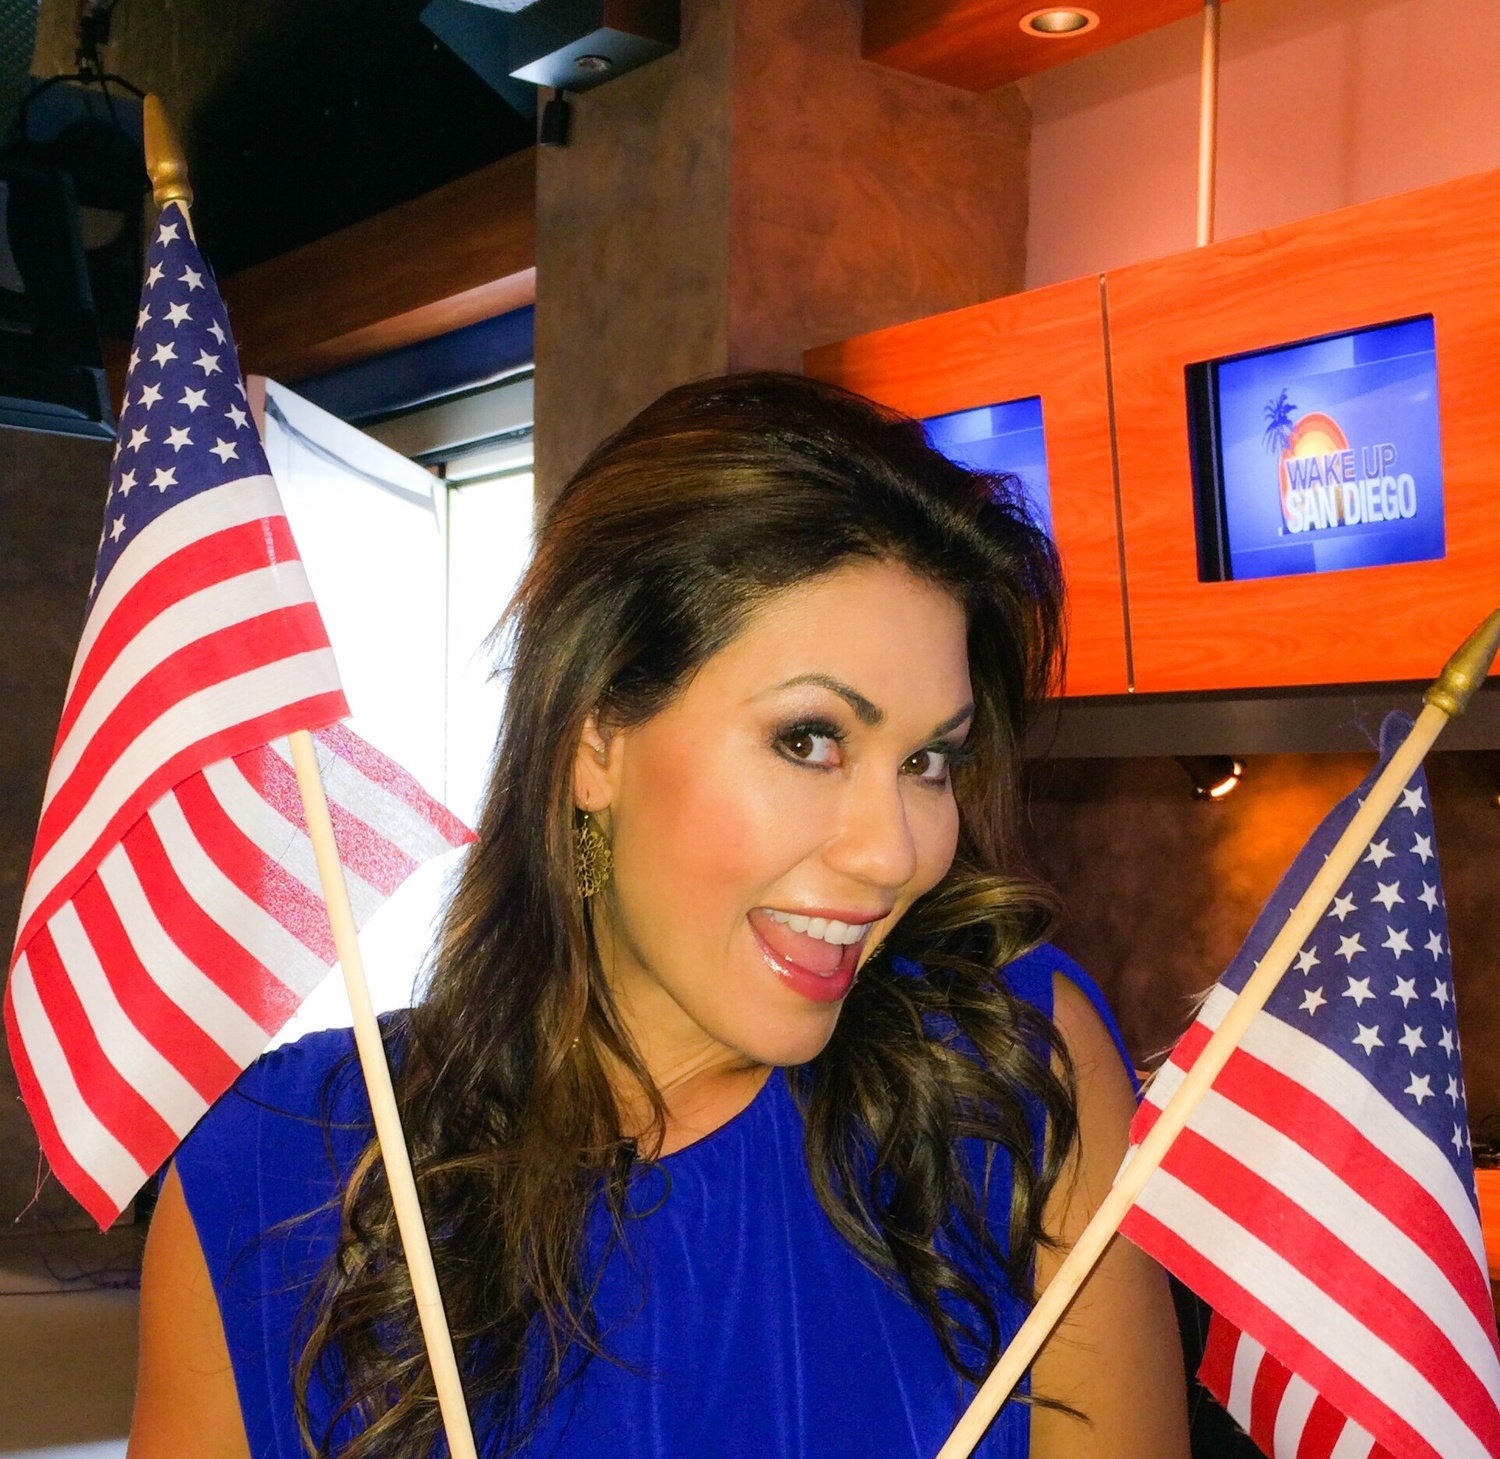 Day 2 of wearing patriotic colors! Go USA (World Cup)!